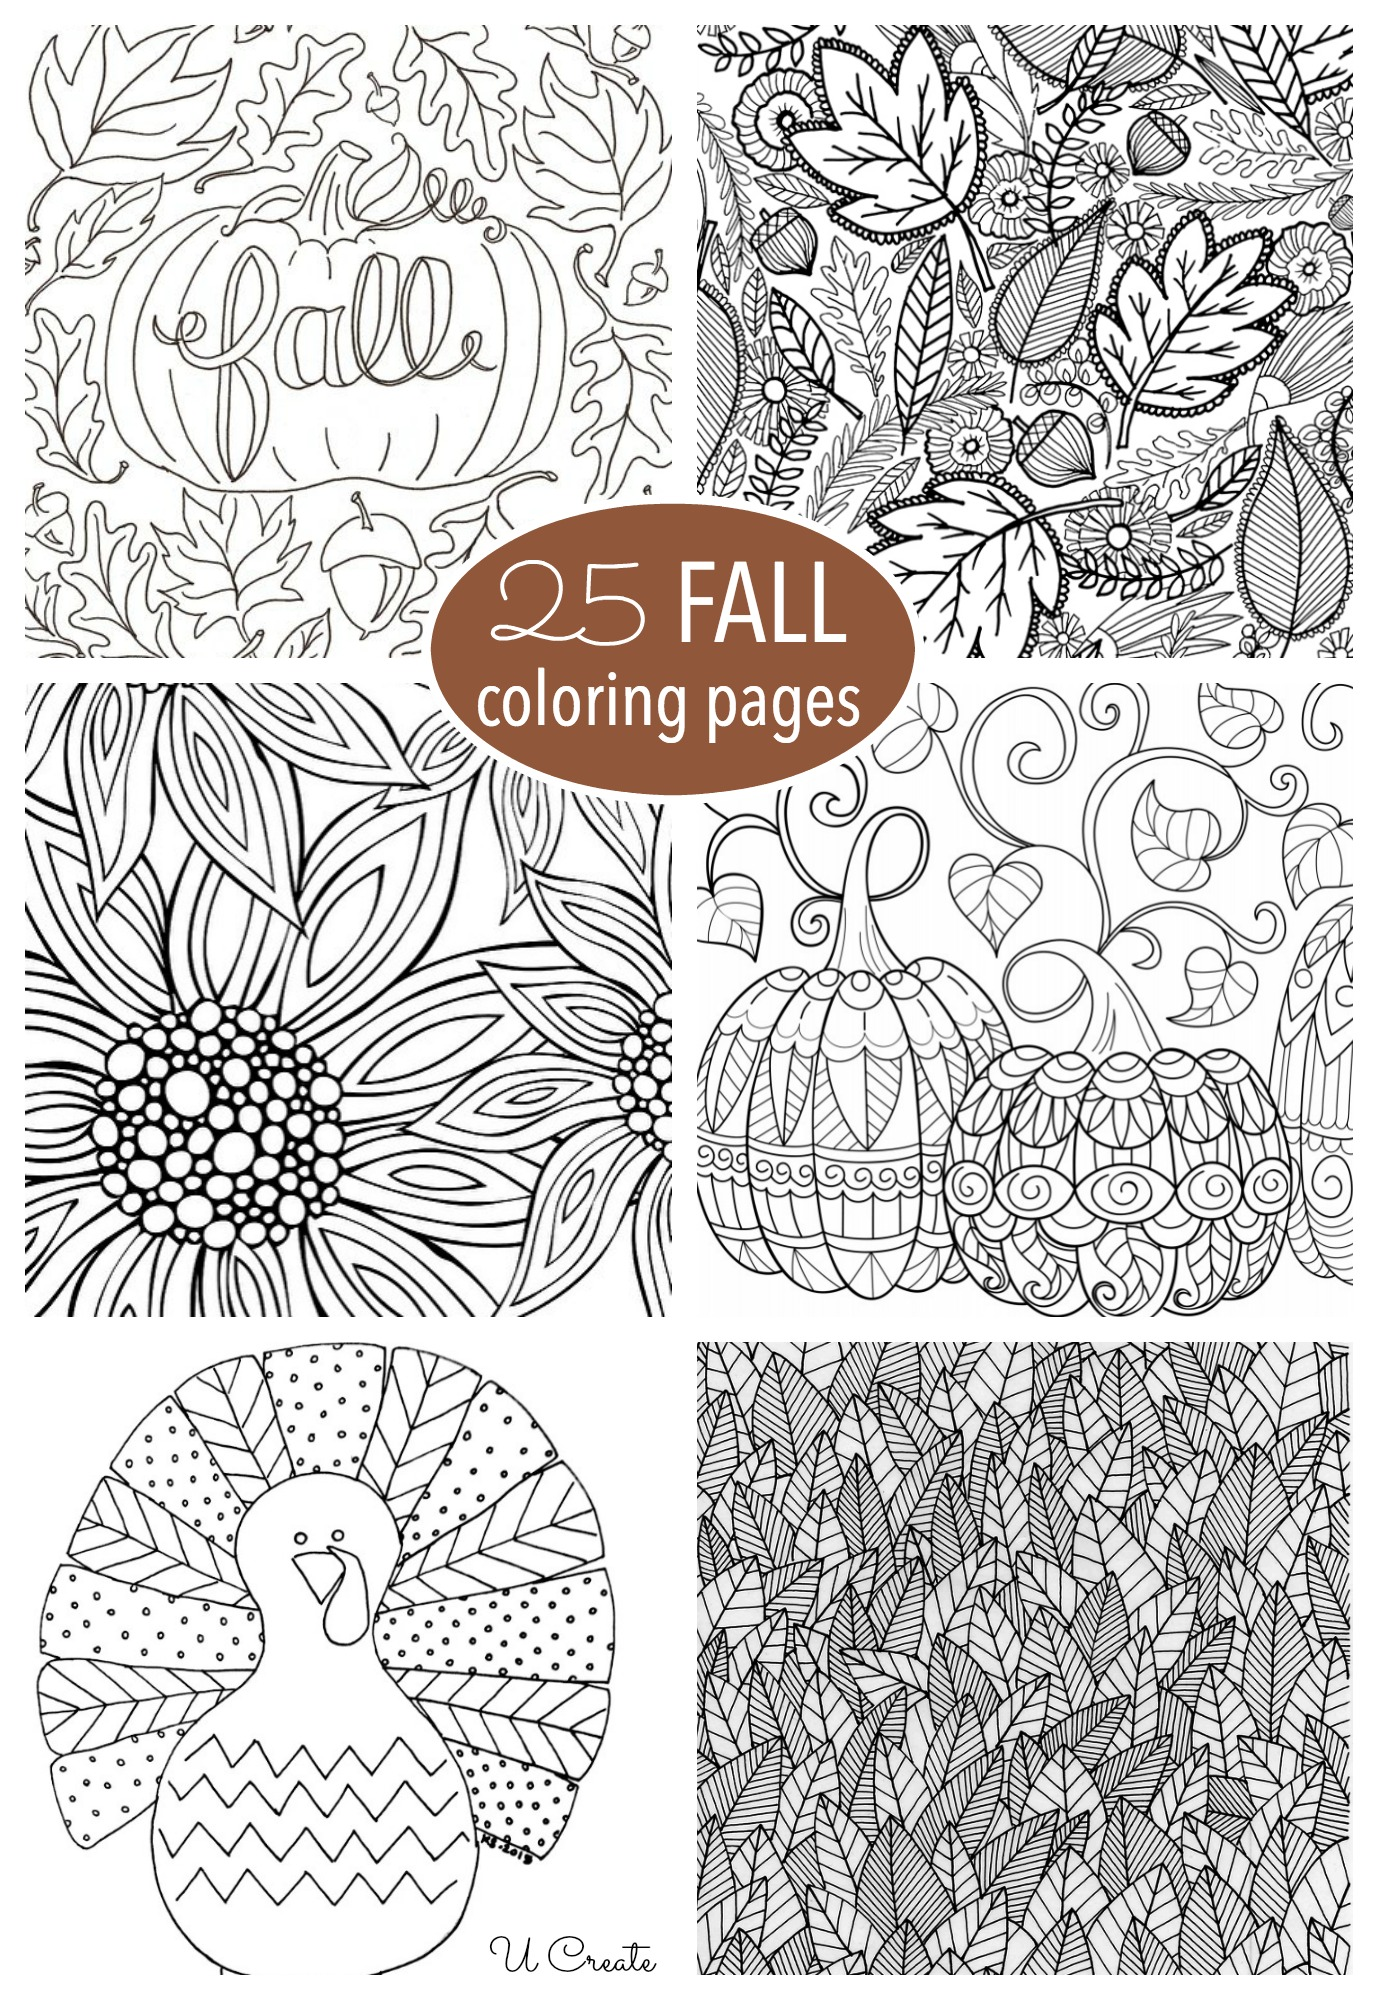 graphic relating to Fall Coloring Pages Printable Free named Cost-free Slide Grownup Coloring Web pages - U Deliver